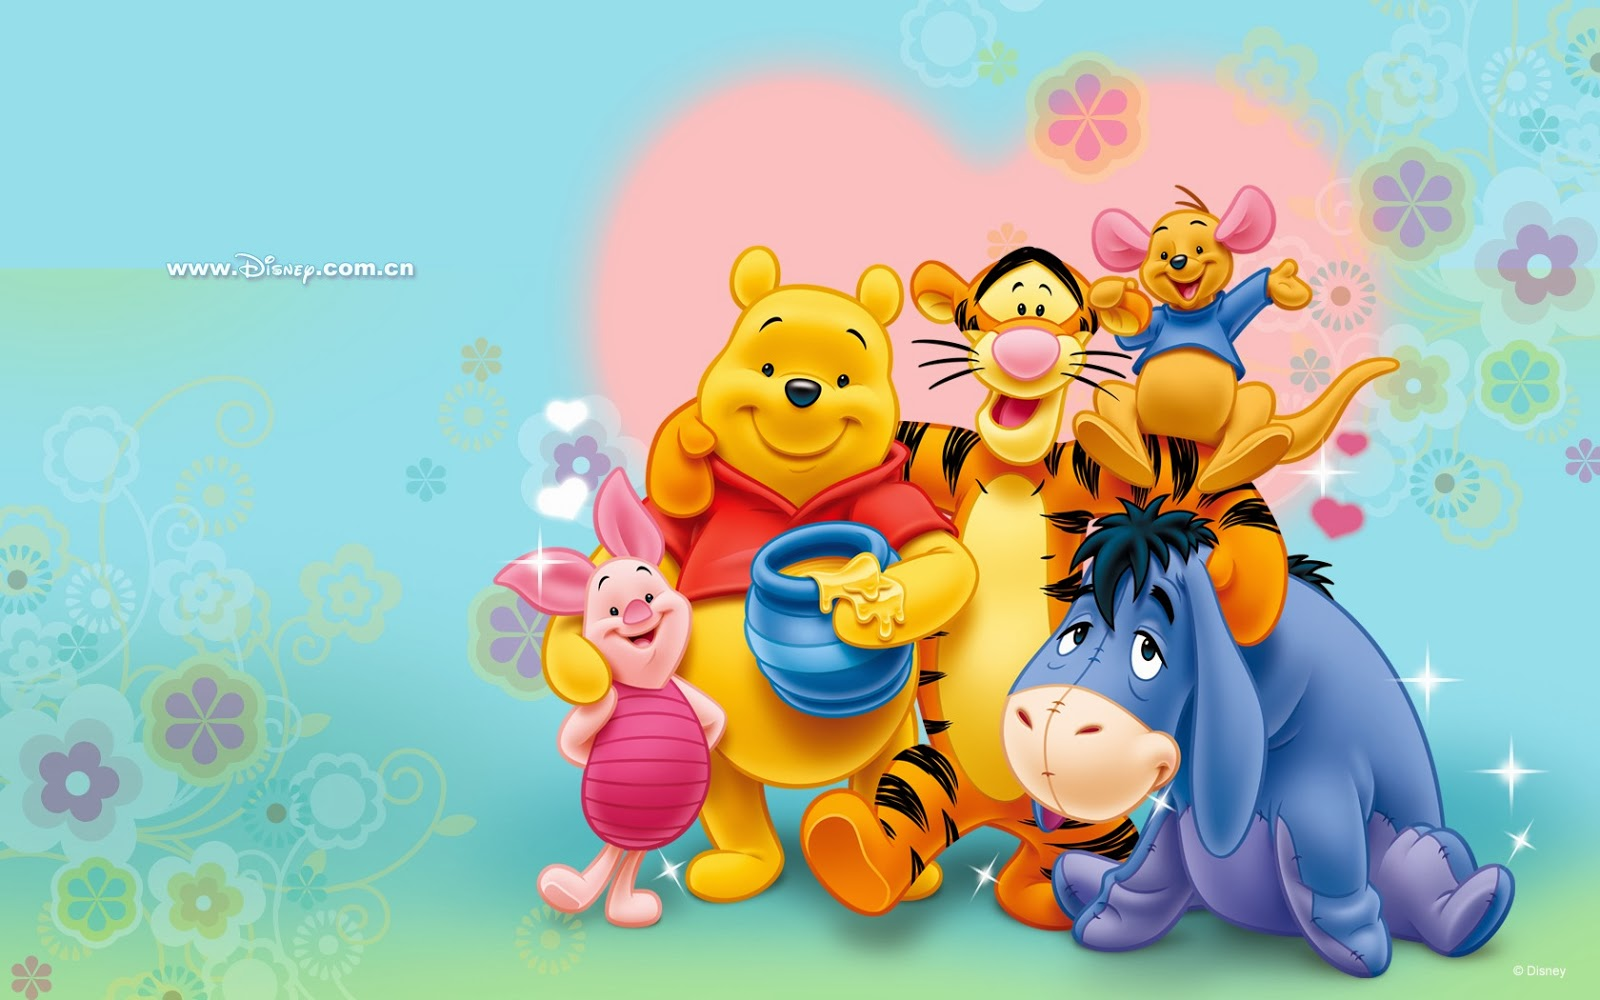 gambar wallpaper kamar wallpaper anak wallpaper kartun 0komentar